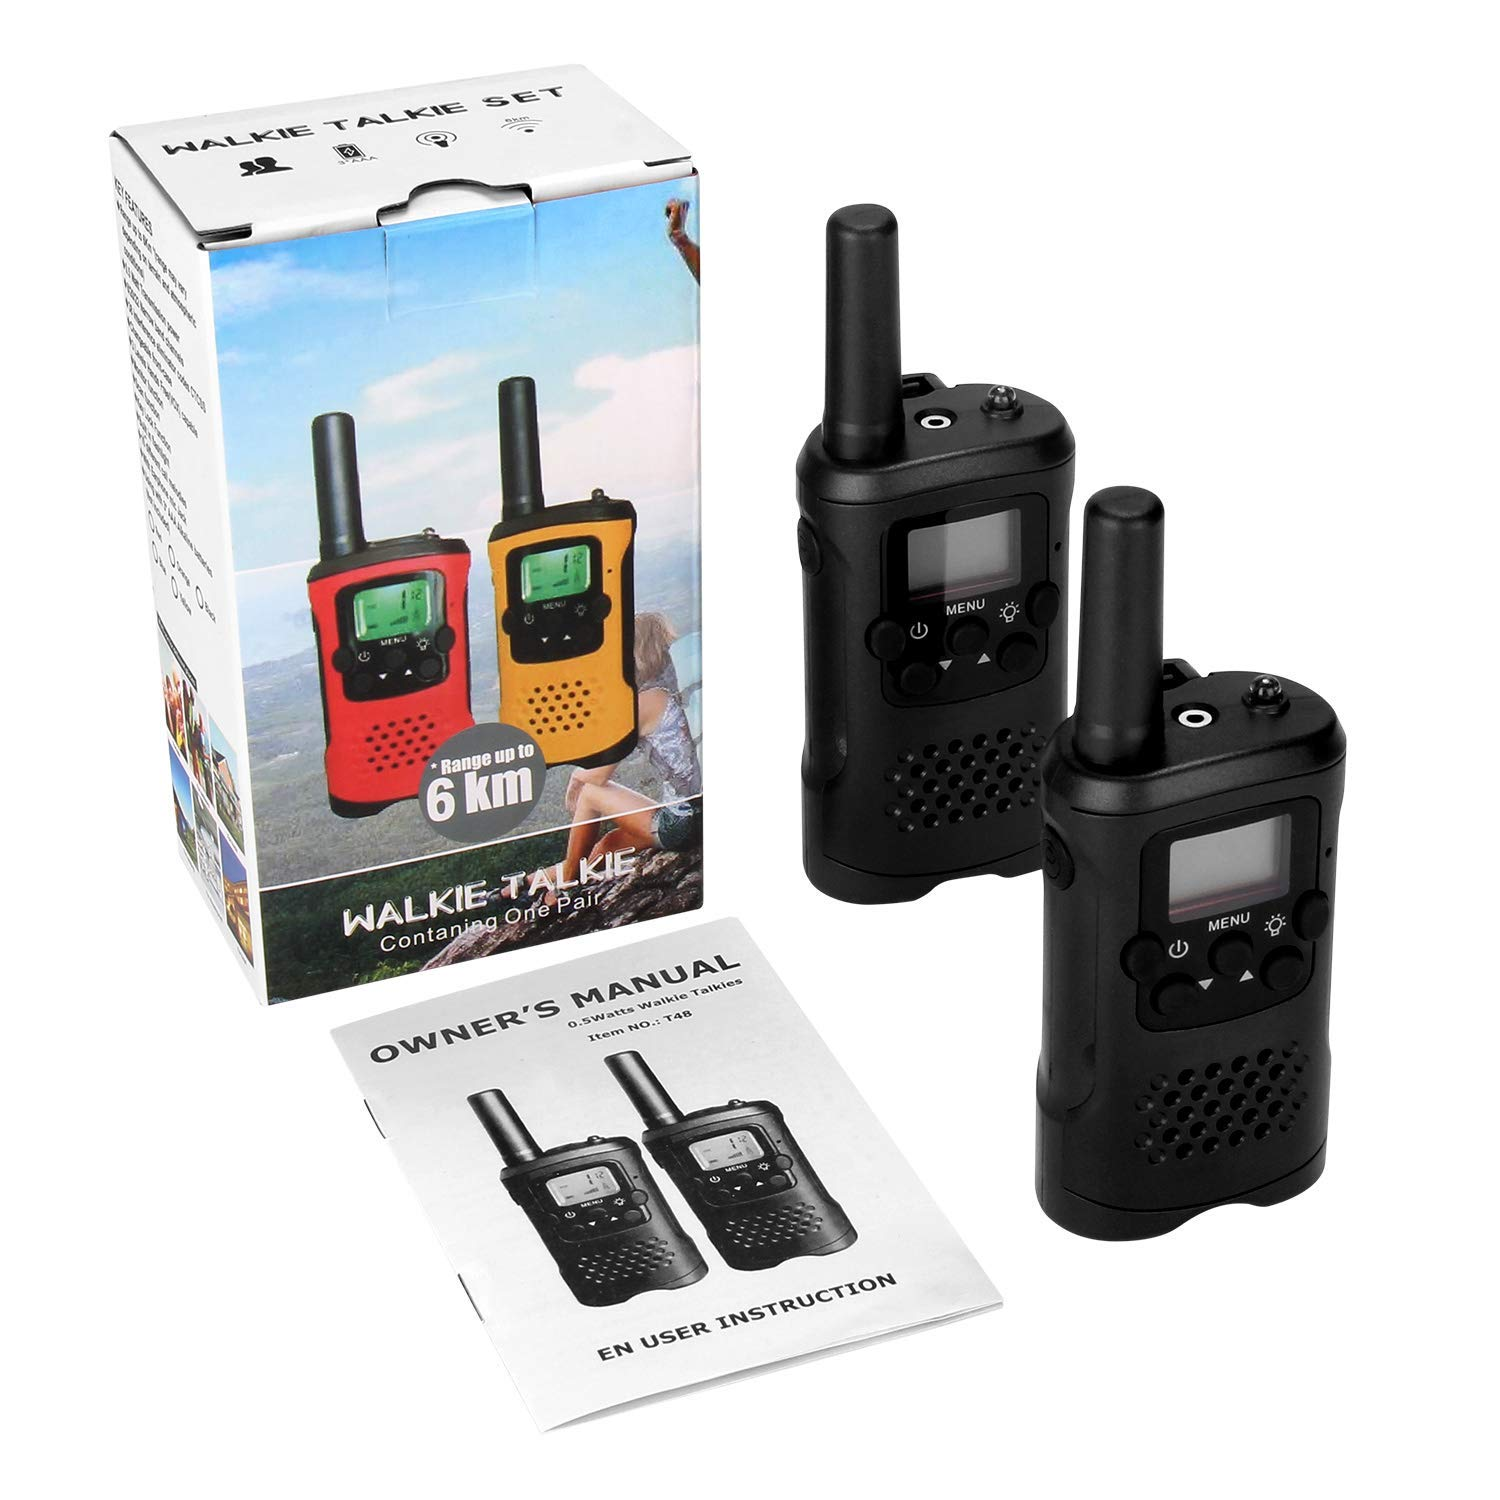 Walkie Talkies for Kids 22 Channels Long Range Rechargeable Walkie Talkies with Battery and Charger by VERDUO (Image #2)